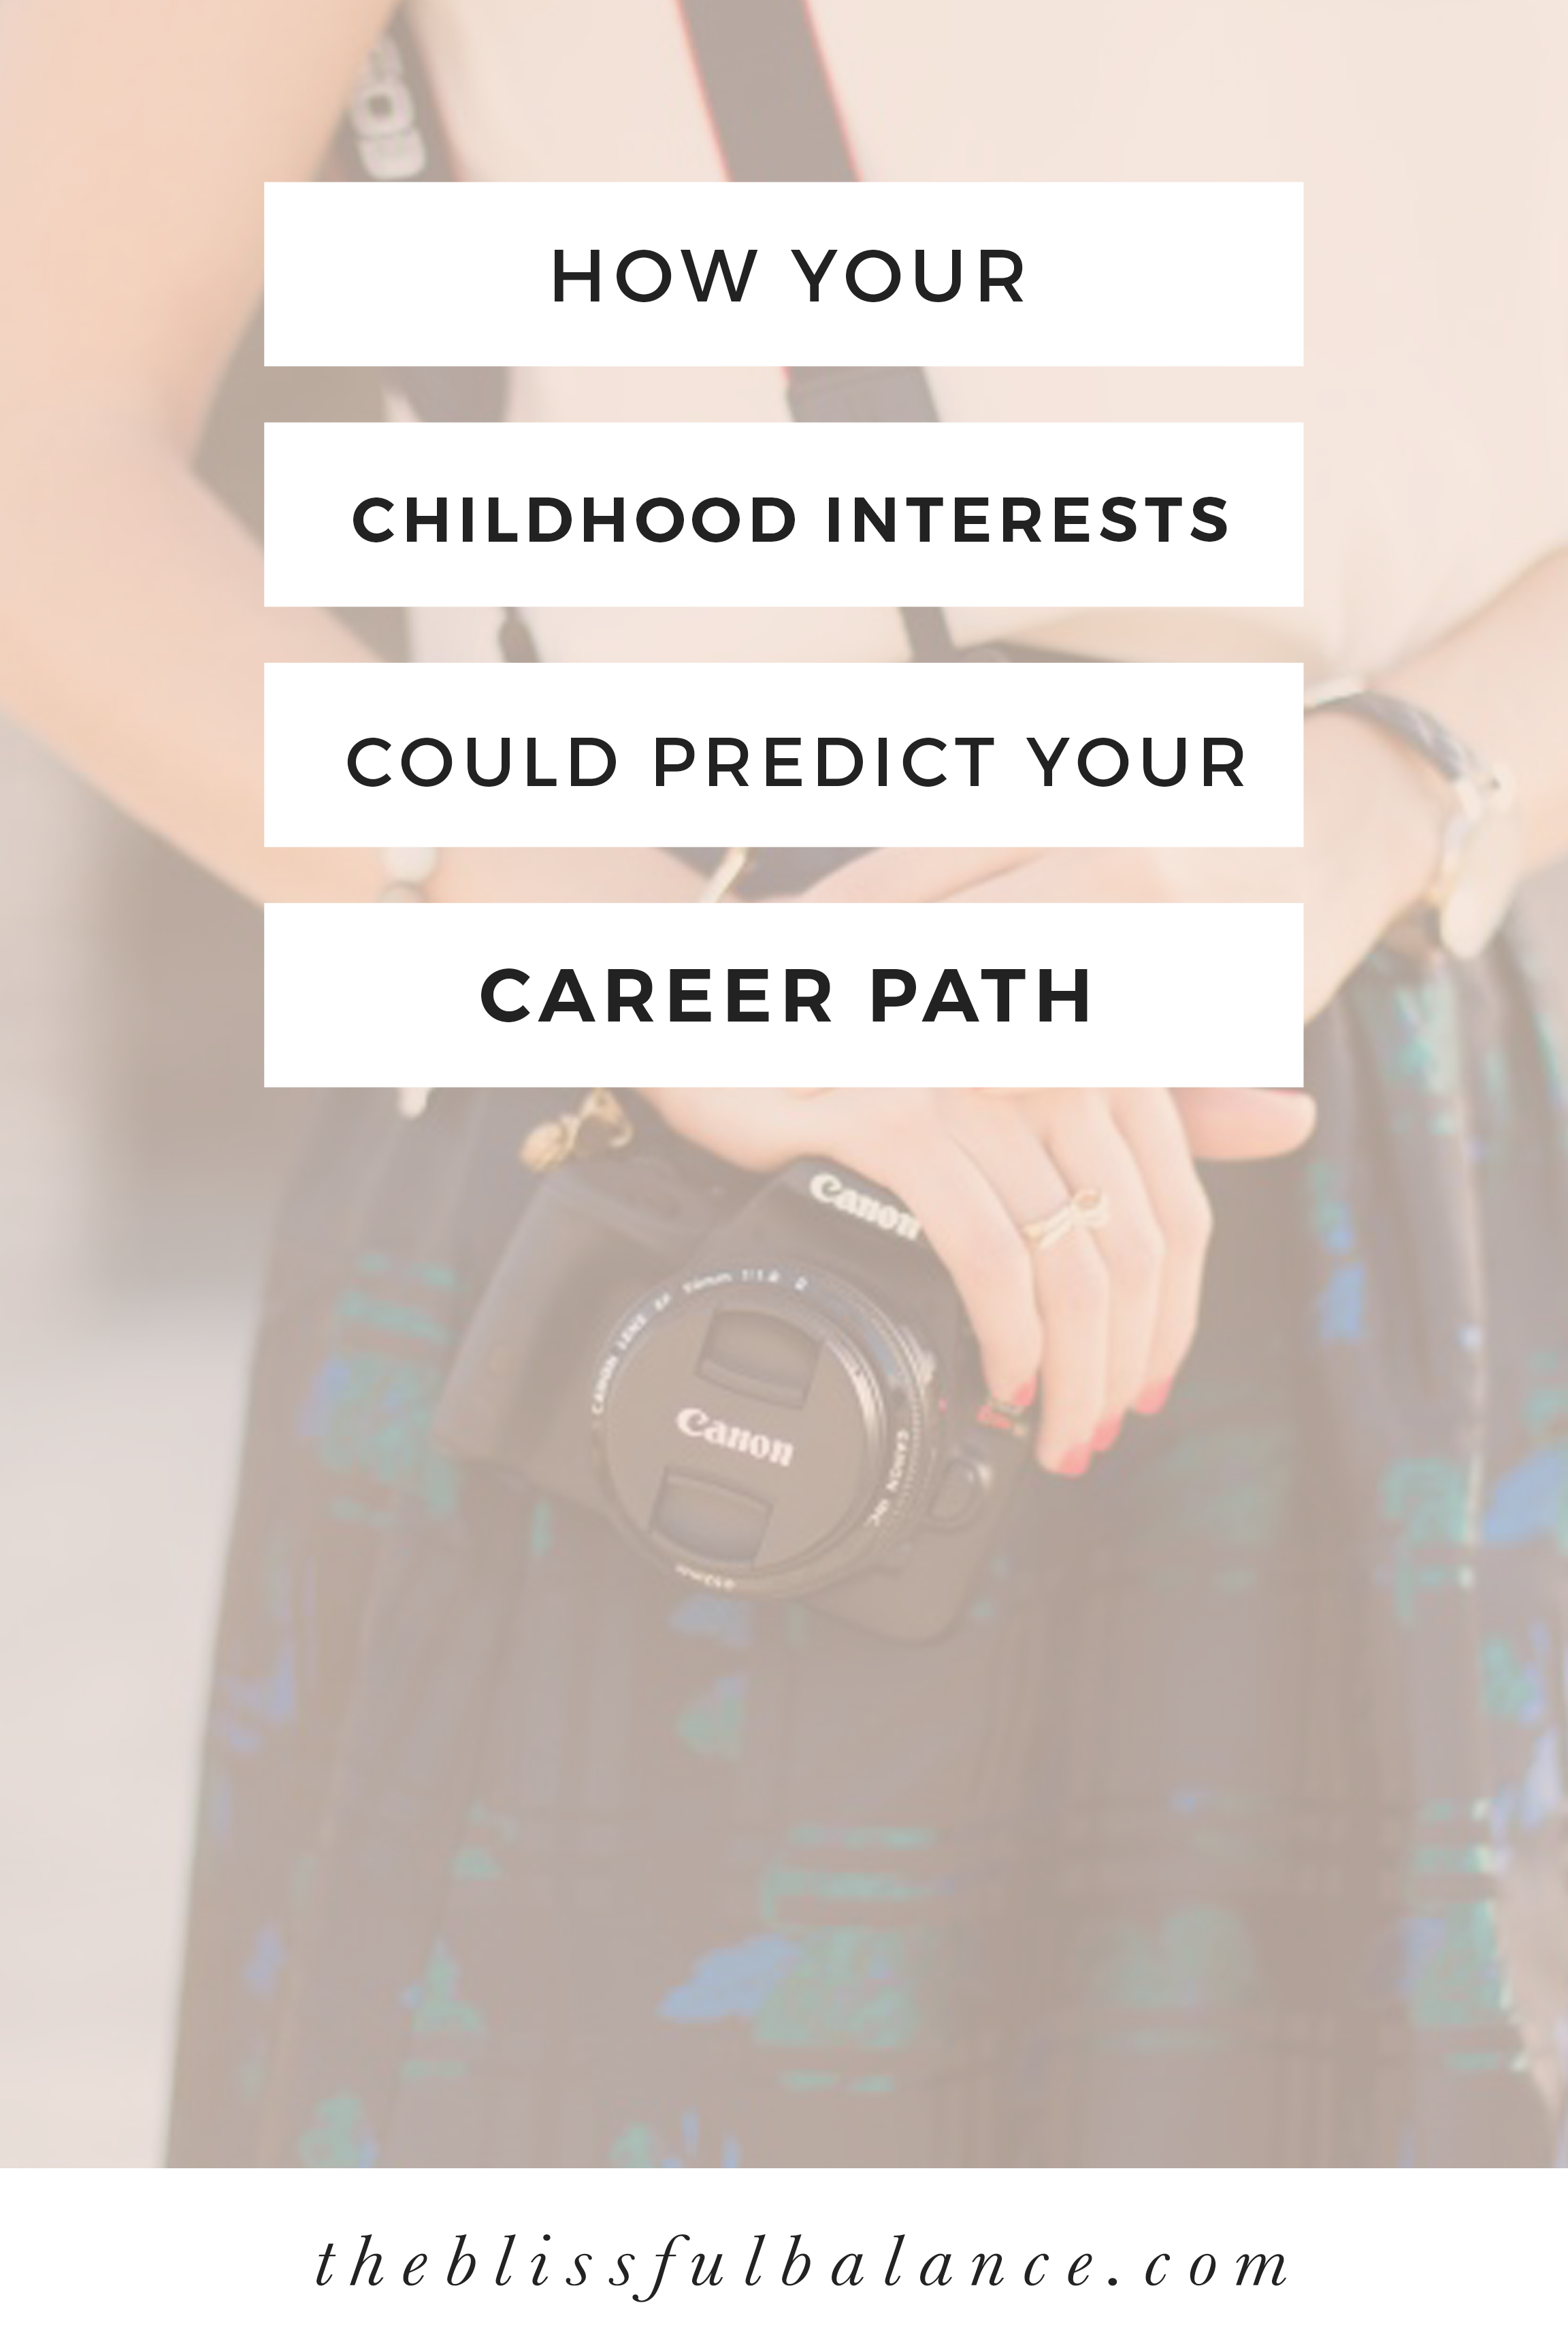 How Your Childhood Interests Could Predict Your Career Path